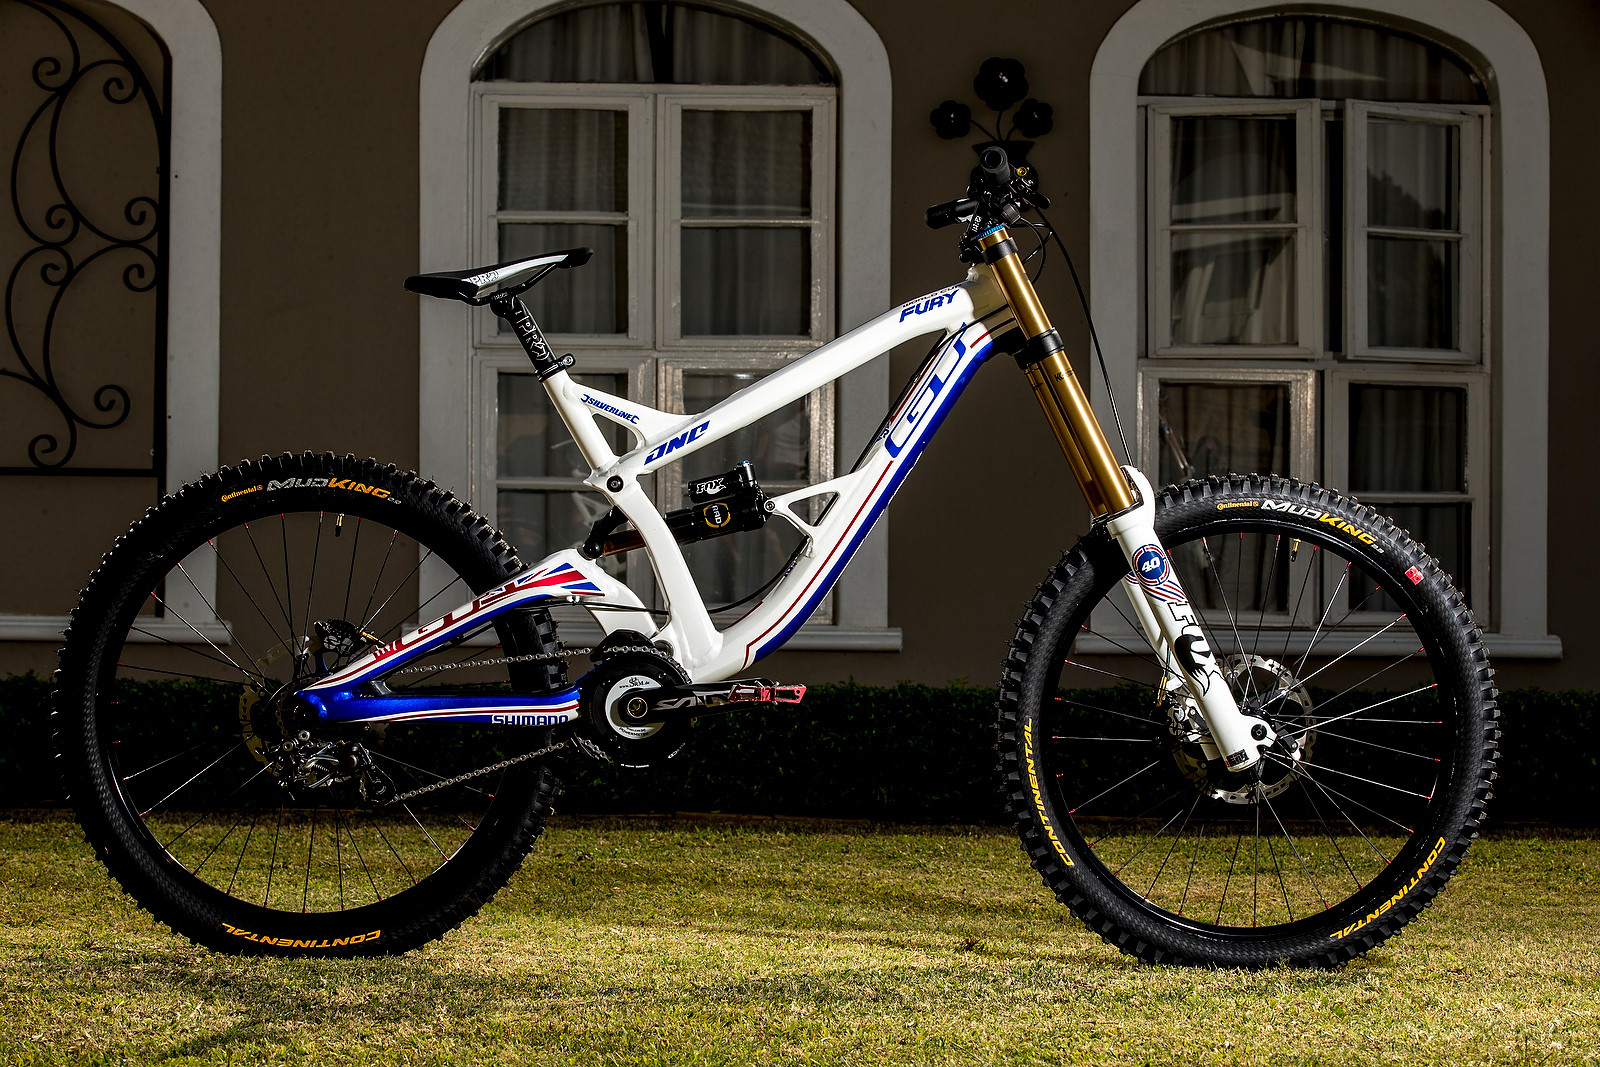 WORLD CHAMPS BIKE: Gee Atherton's GT Fury - WORLD CHAMPS BIKE: Gee Atherton's GT Fury - Mountain Biking Pictures - Vital MTB